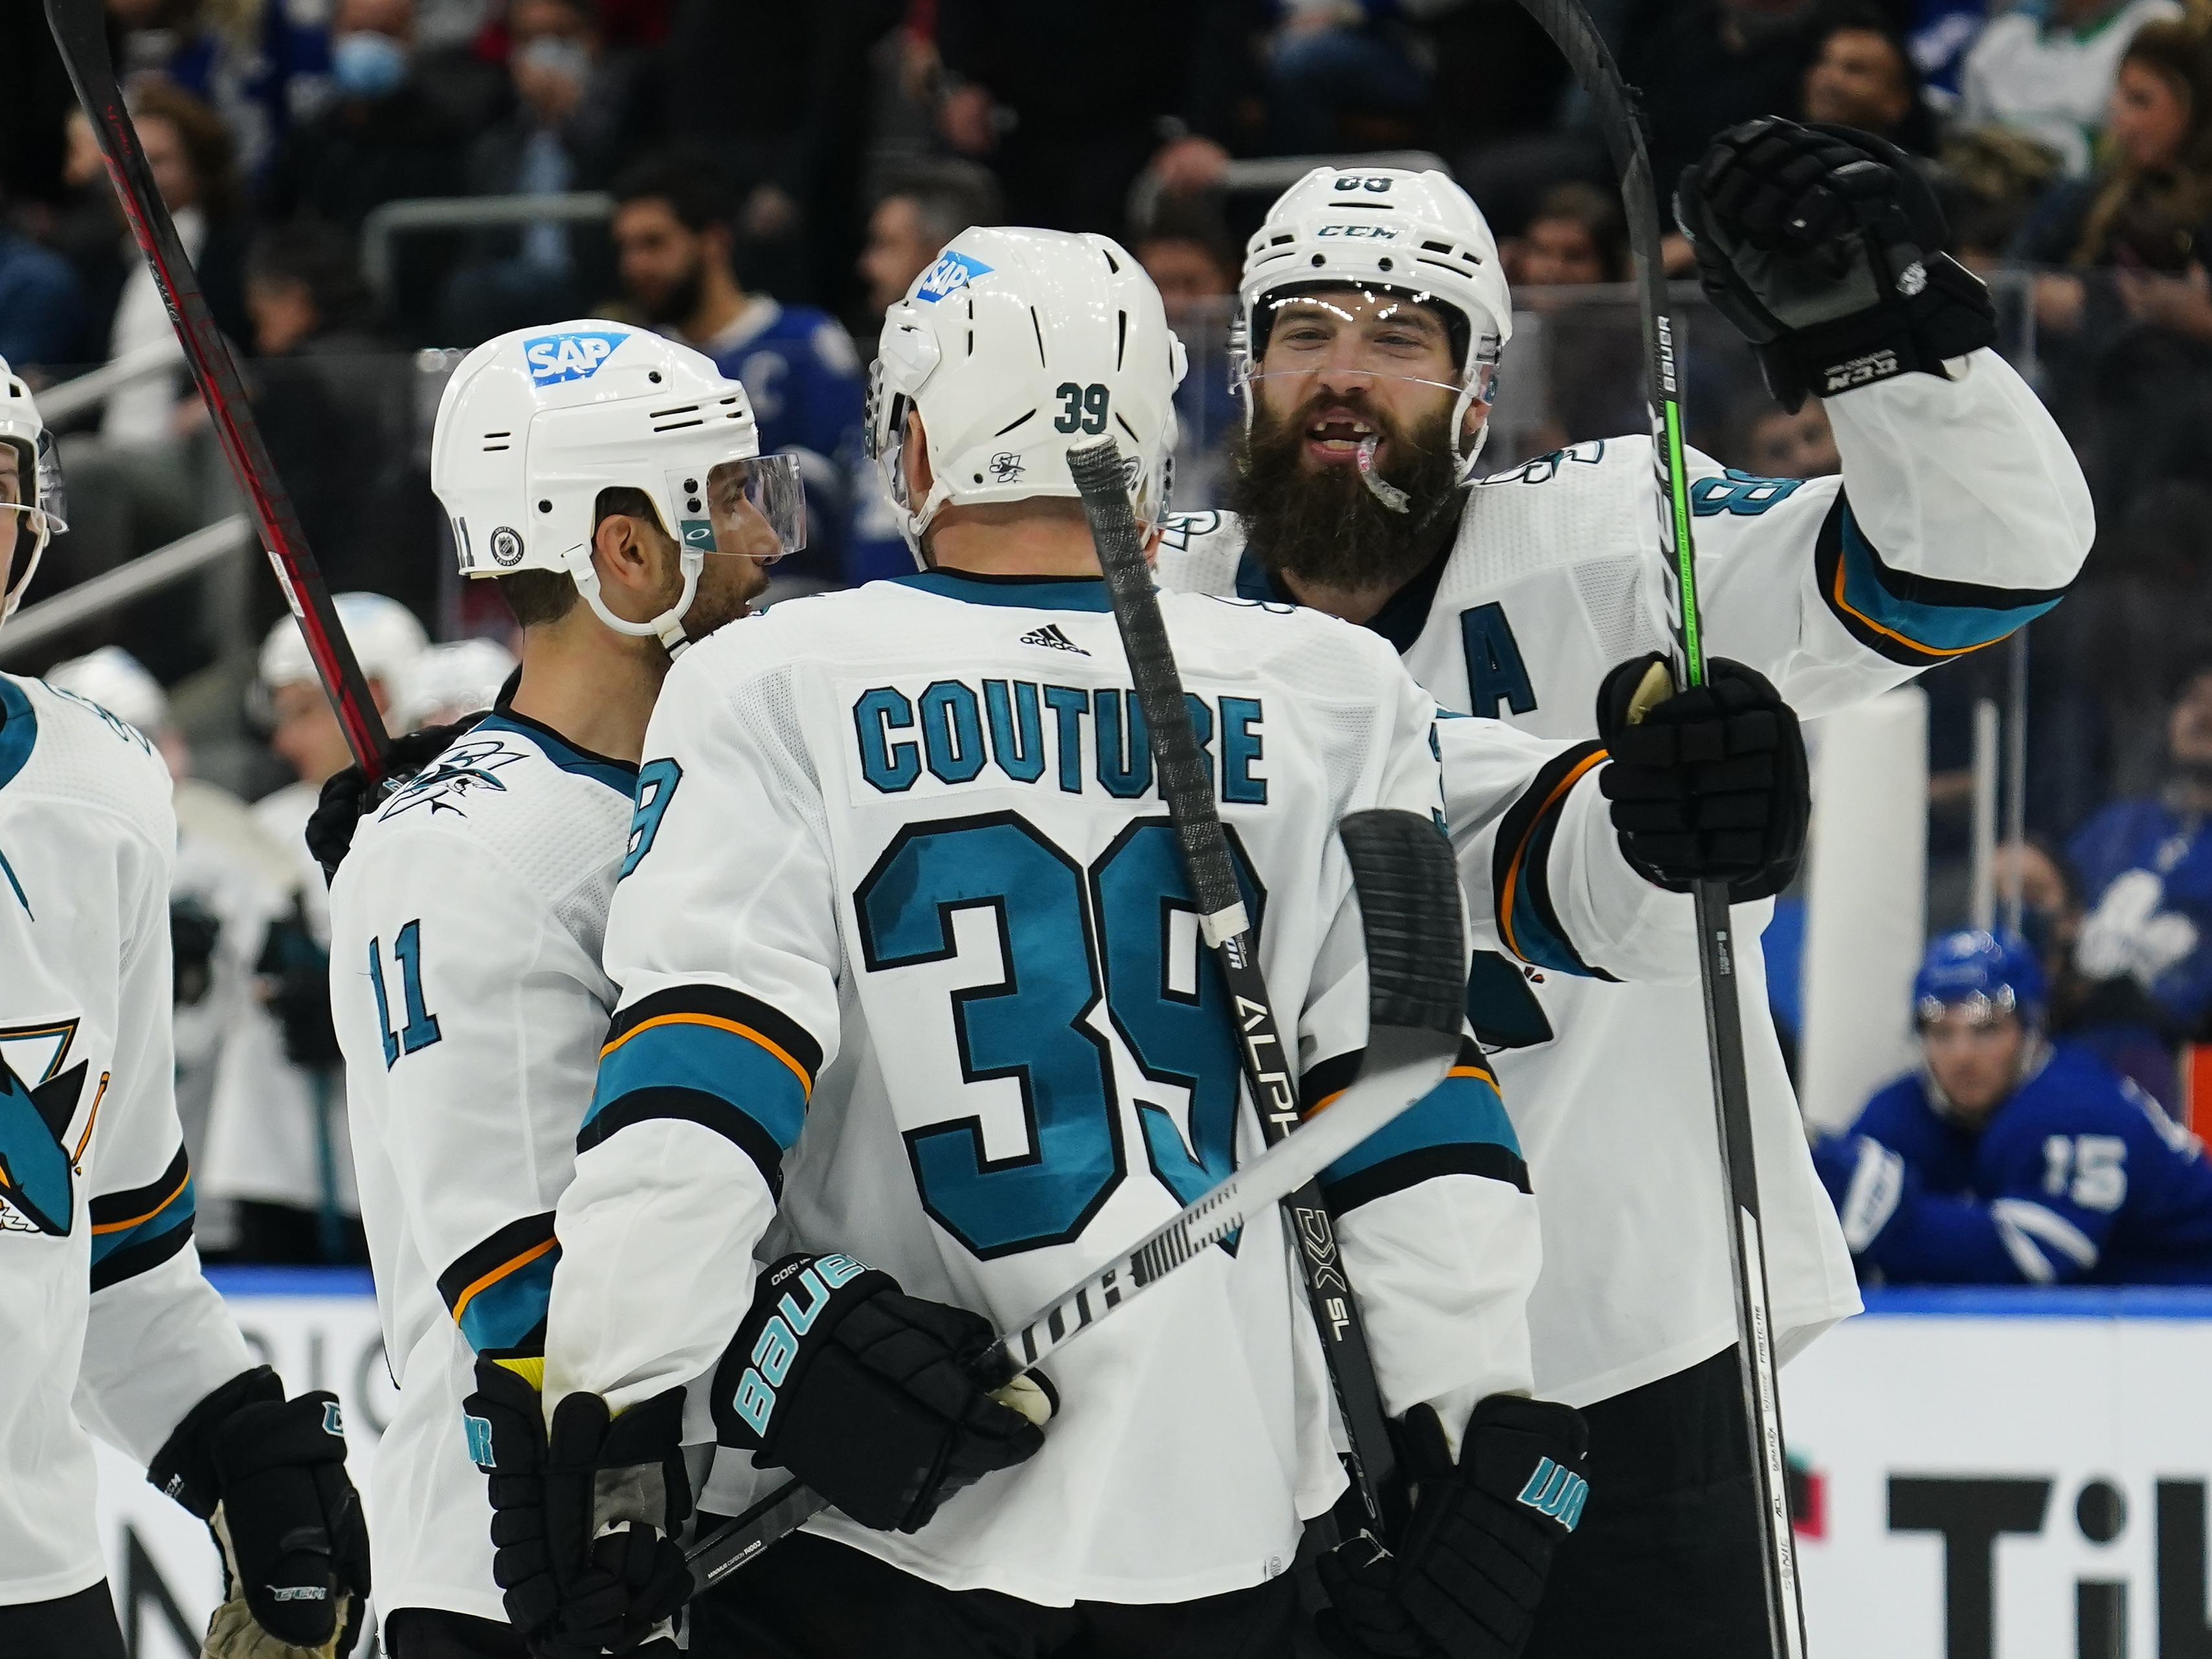 Oct 22, 2021; Toronto, Ontario, CAN; San Jose Sharks defenseman Brent Burns (88) and forward Andrew Cogliano (11) congratulate forward Logan Couture (39) on his second goal of the game against the Toronto Maple Leafs during the third period at Scotiabank Arena.